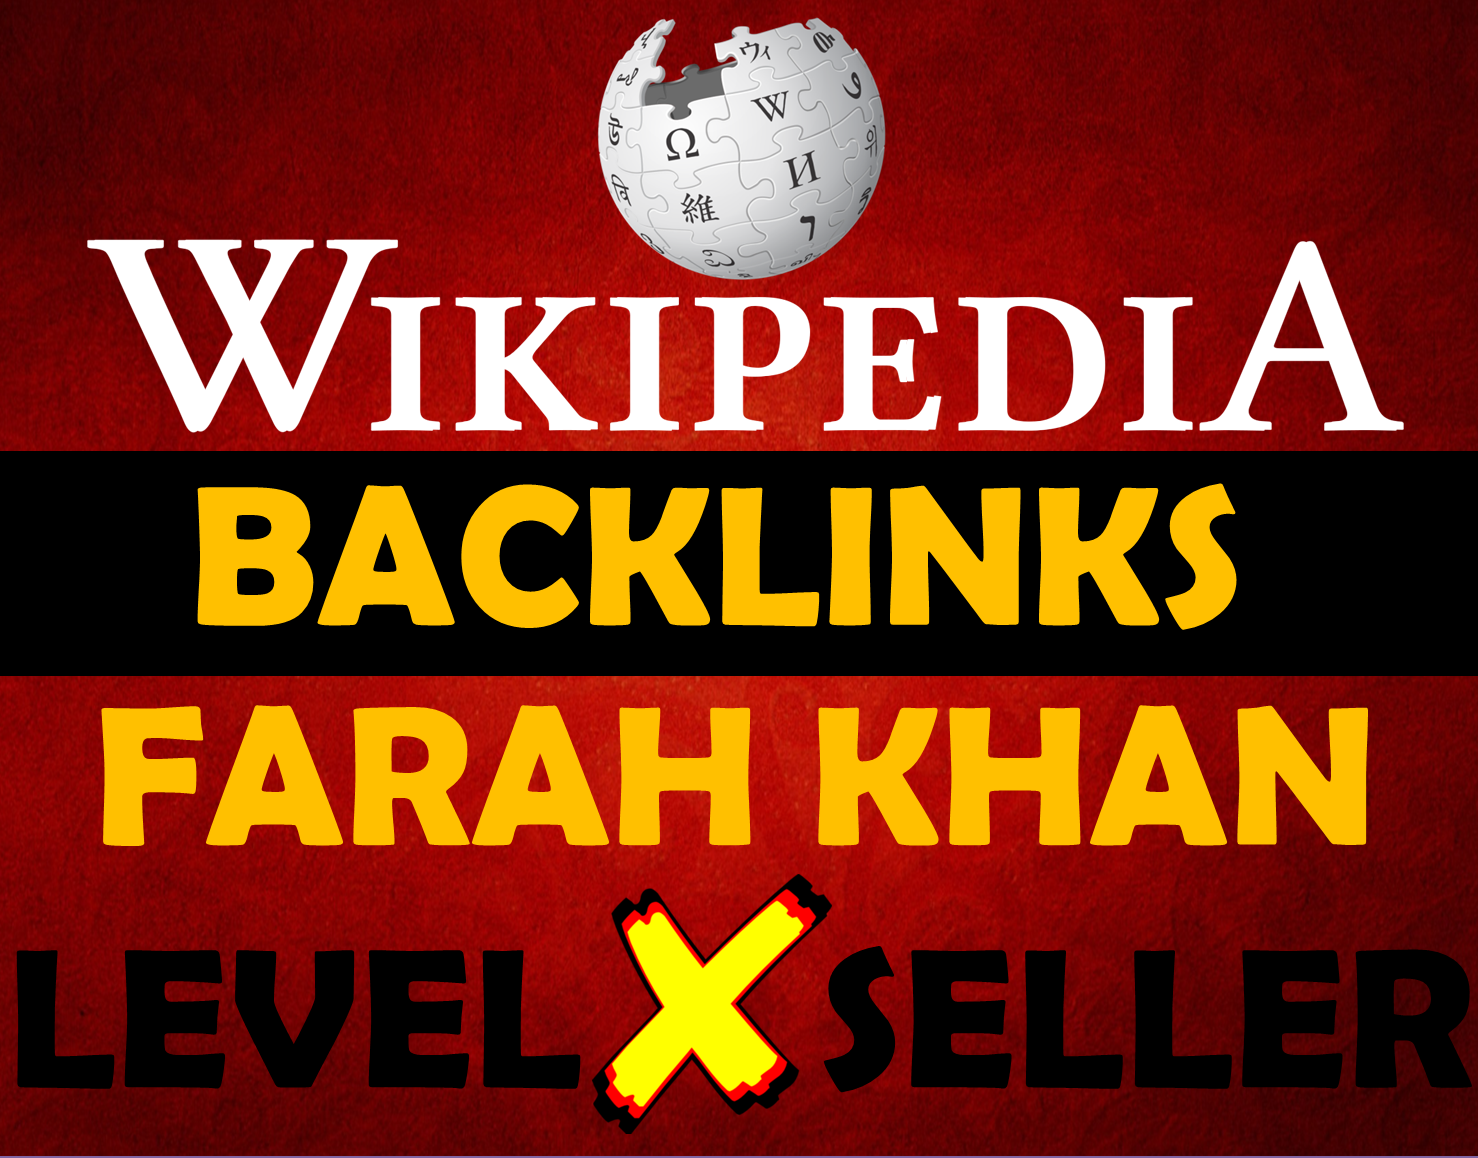 WIKIPEDIA BACKLINK POWER PACK BY LEVEL X3 SELLER - 12.5 YEARS SEO EXPERIENCE